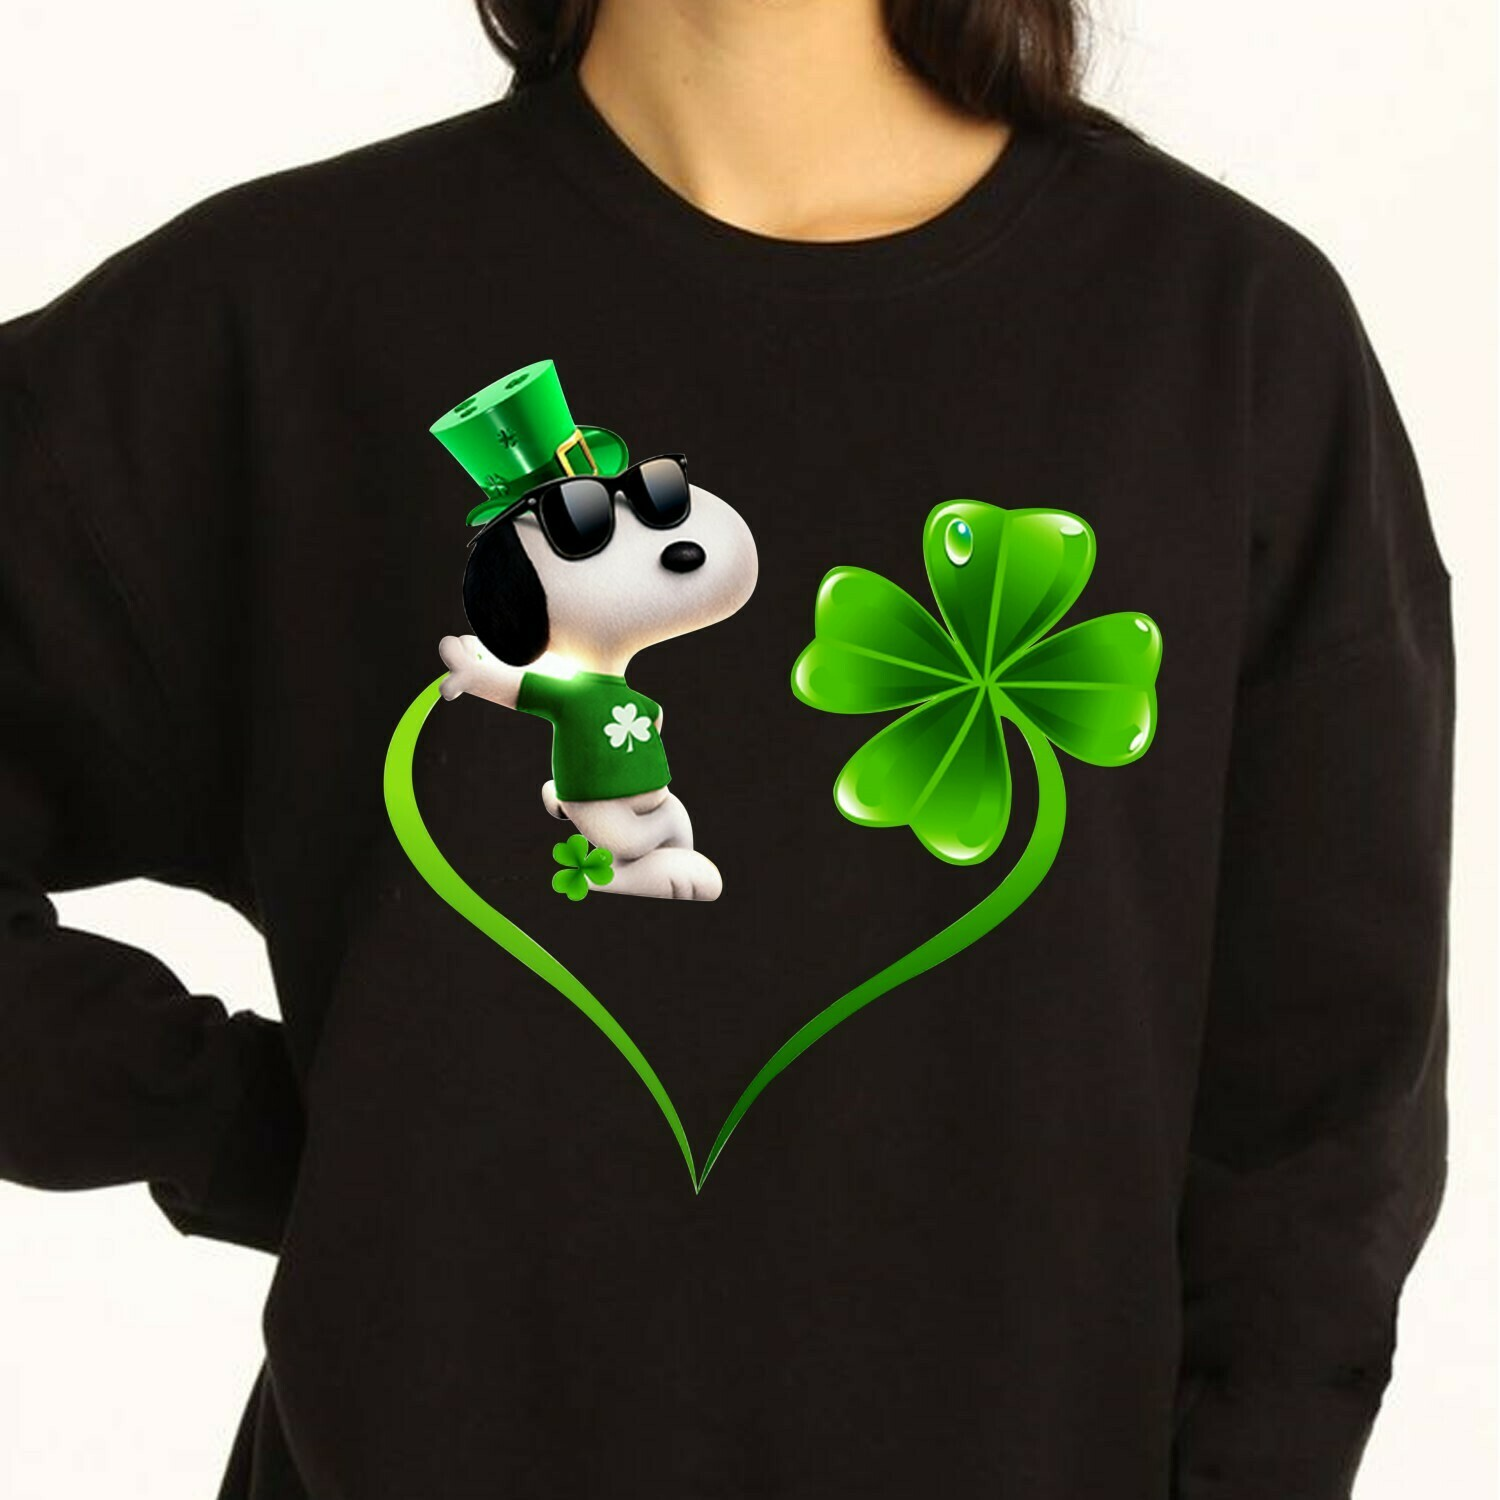 Irish Snoopy Peanuts Leprechauns Shamrock Hippie Peace Sign St Patrick Day Flowery Round  T-Shirt Hoodie Sweatshirt Sweater Tee Kids Youth Gifts Jolly Family Gifts